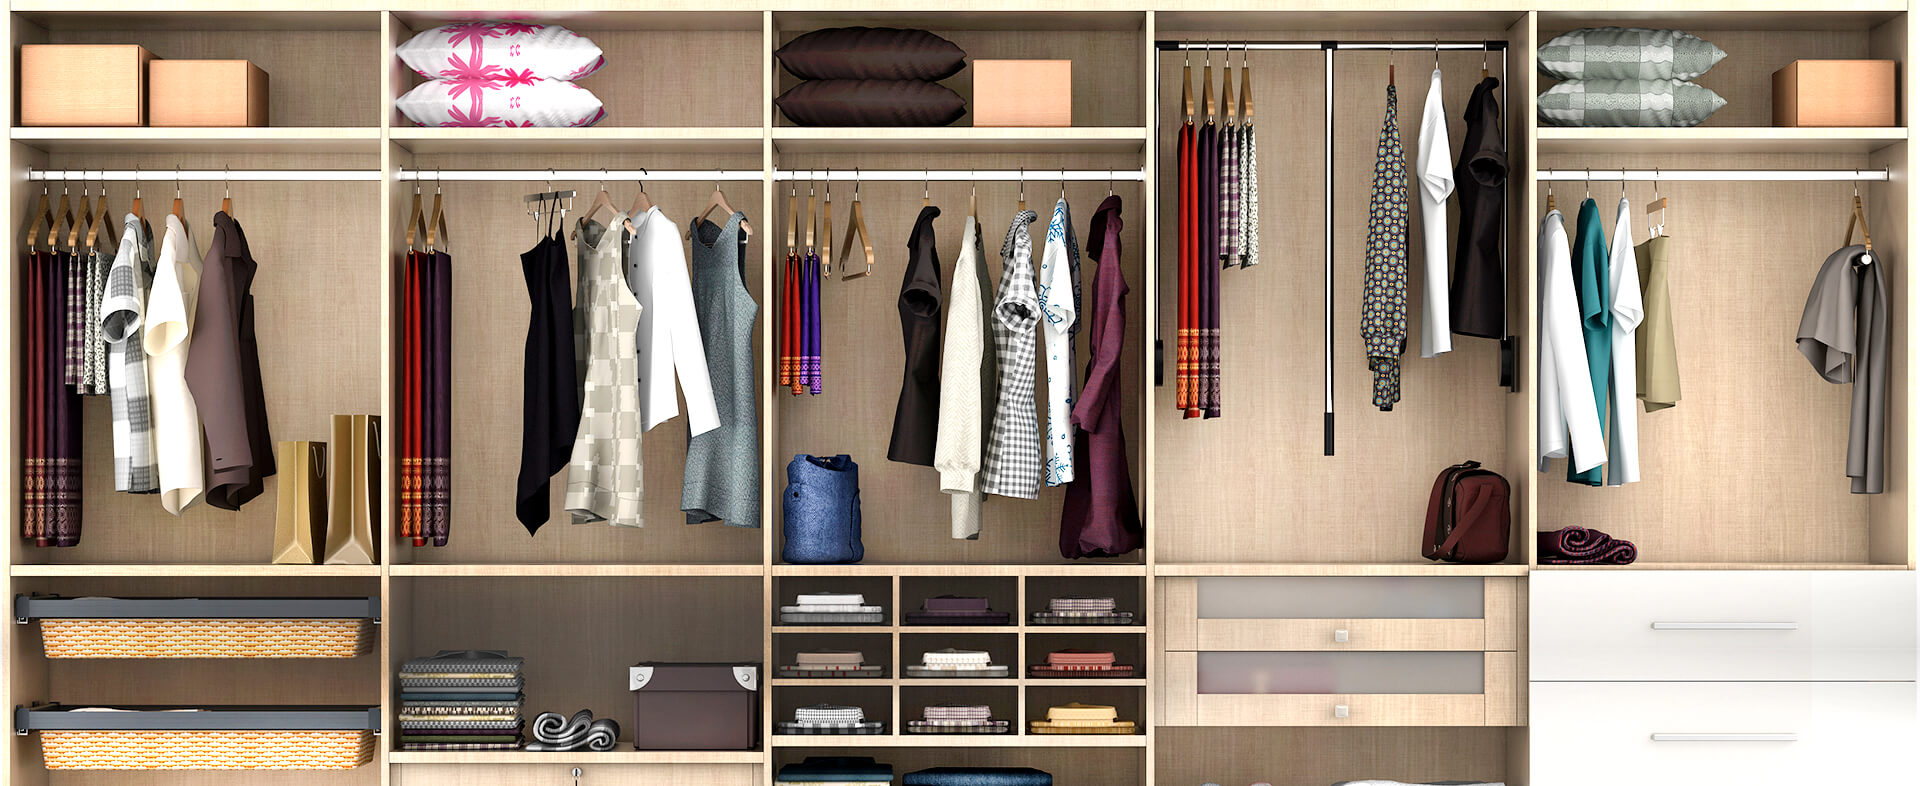 closets competitors up customer o set interior closet with reviews organizer size design vegas las x c full world photo your ca states decor photos united of